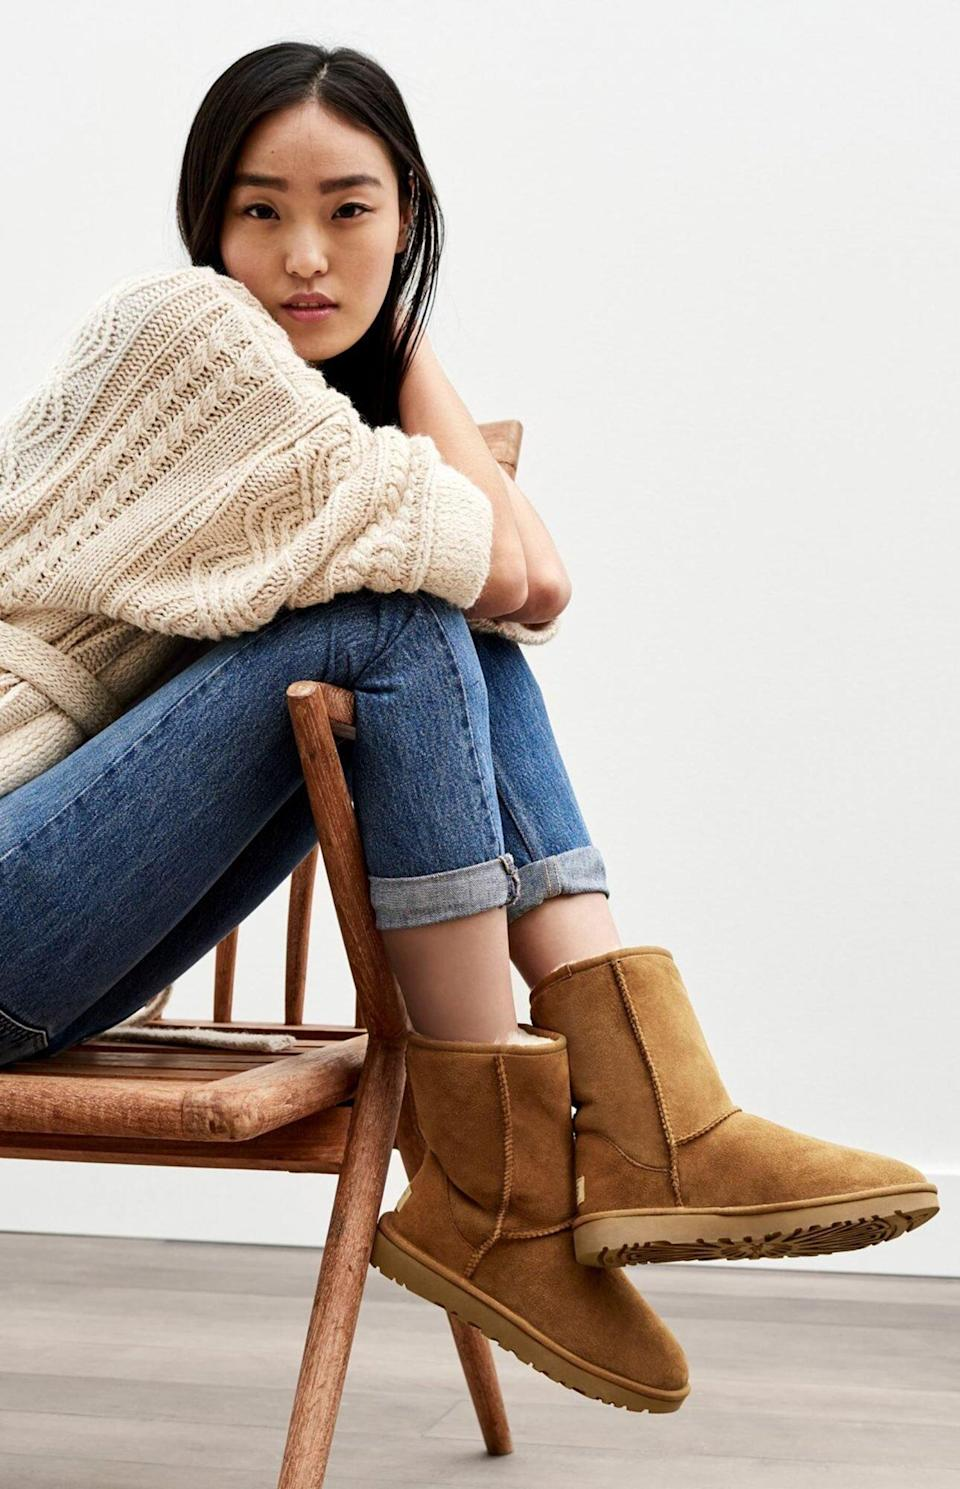 Ugg Boots Restock at Nordstrom